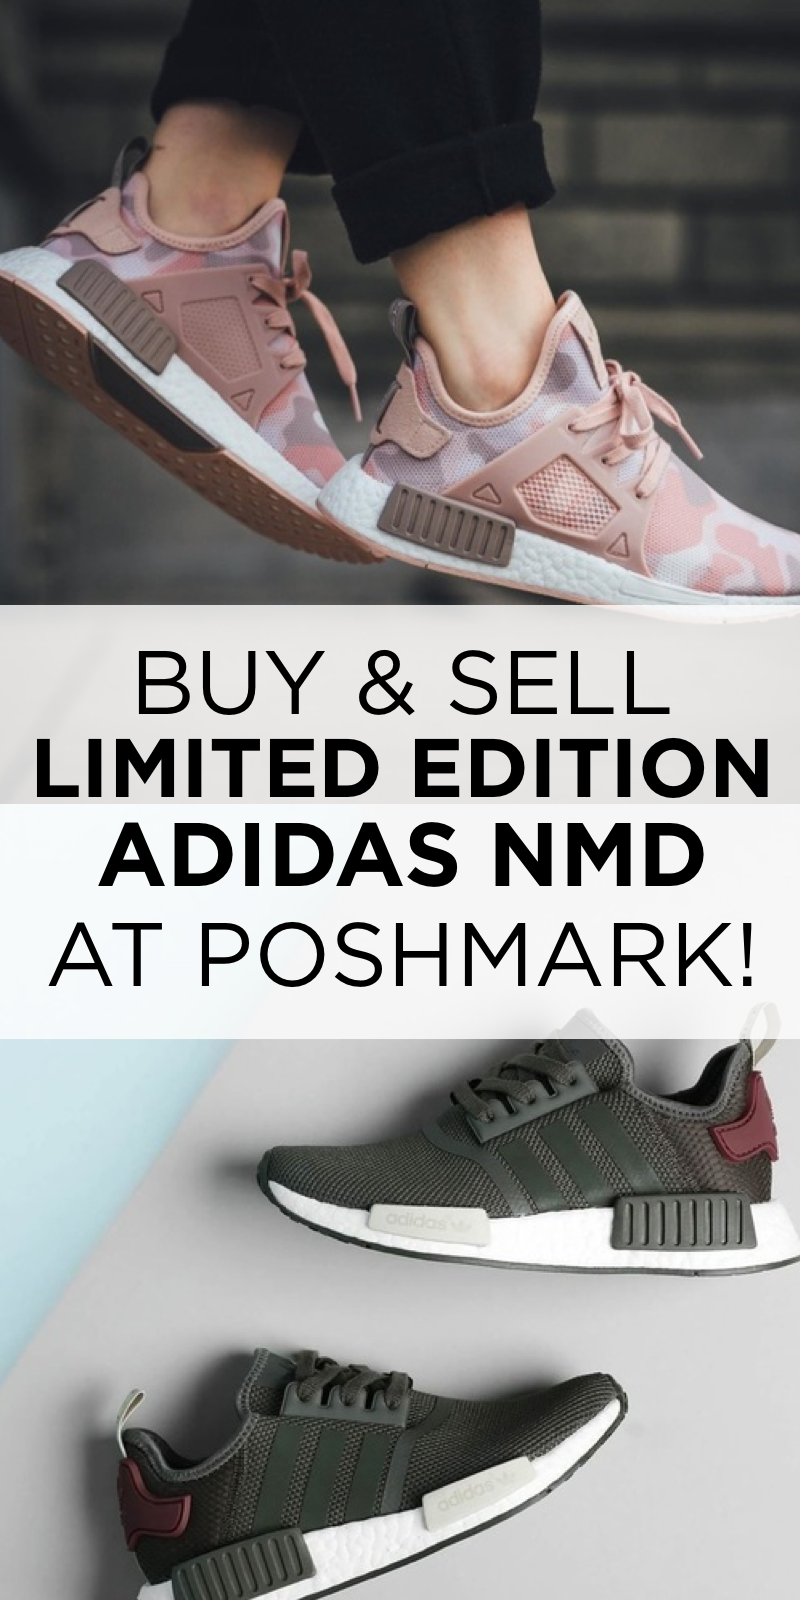 2016 Adidas New Adidas Trainers On Sale Up To 70% Off